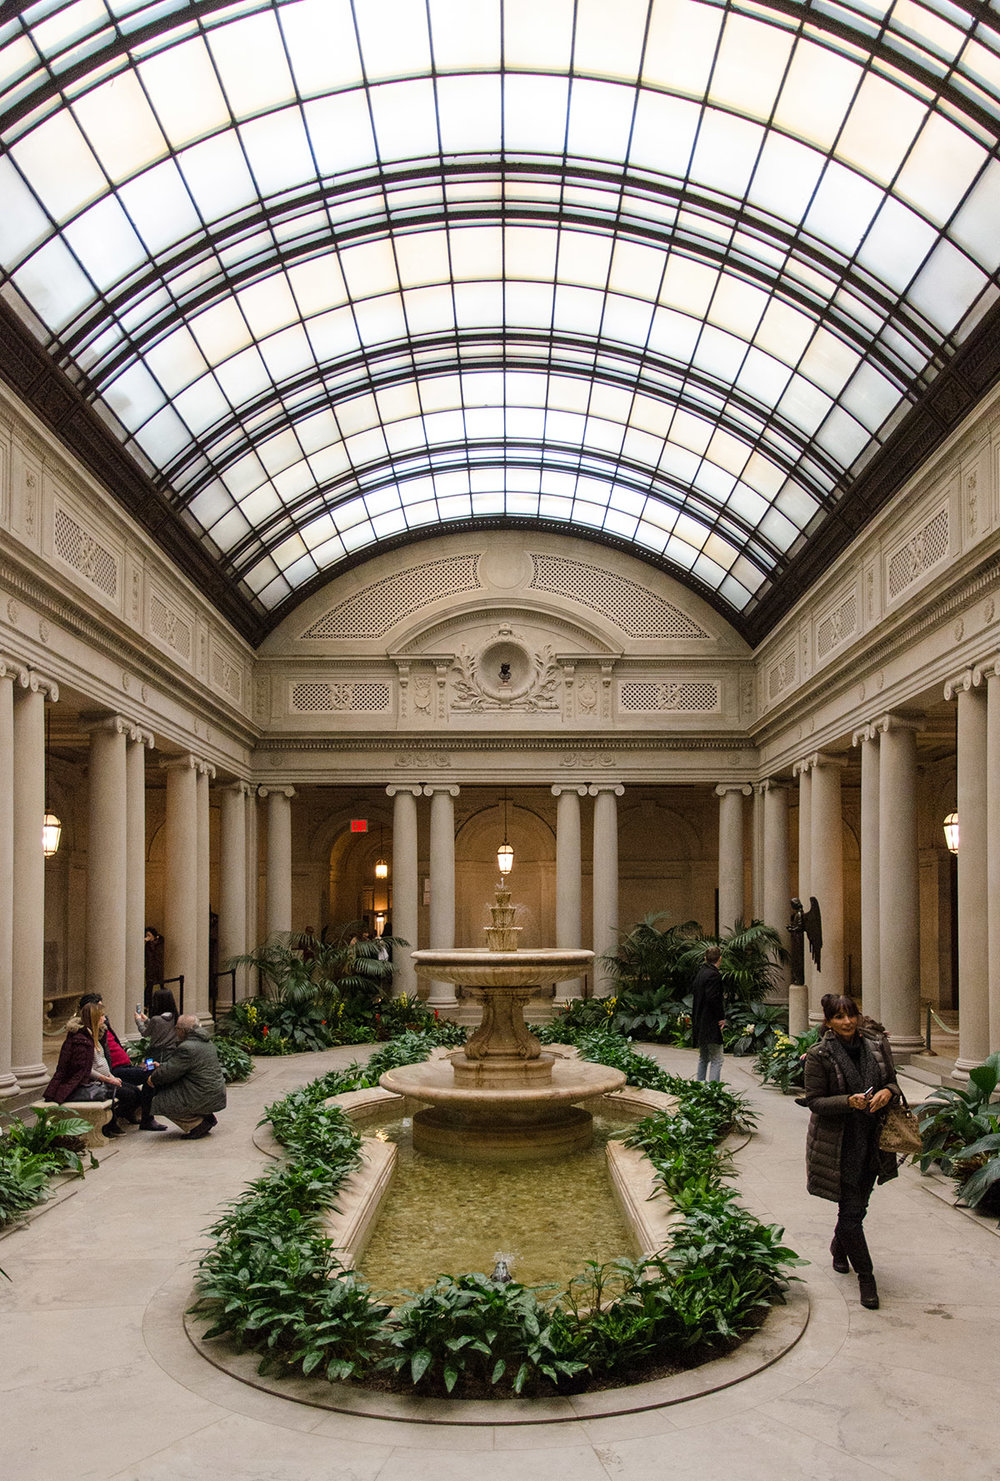 The courtyard at The Frick Museum, NYC